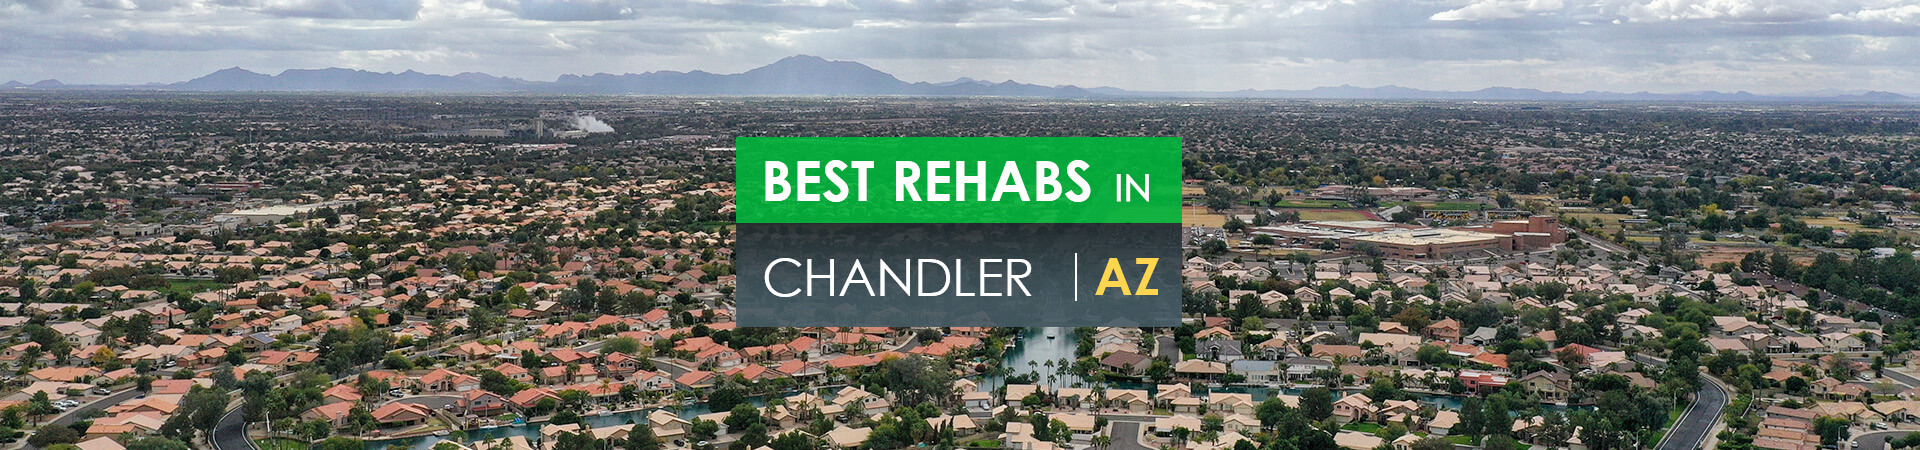 Best rehabs in Chandler, AZ